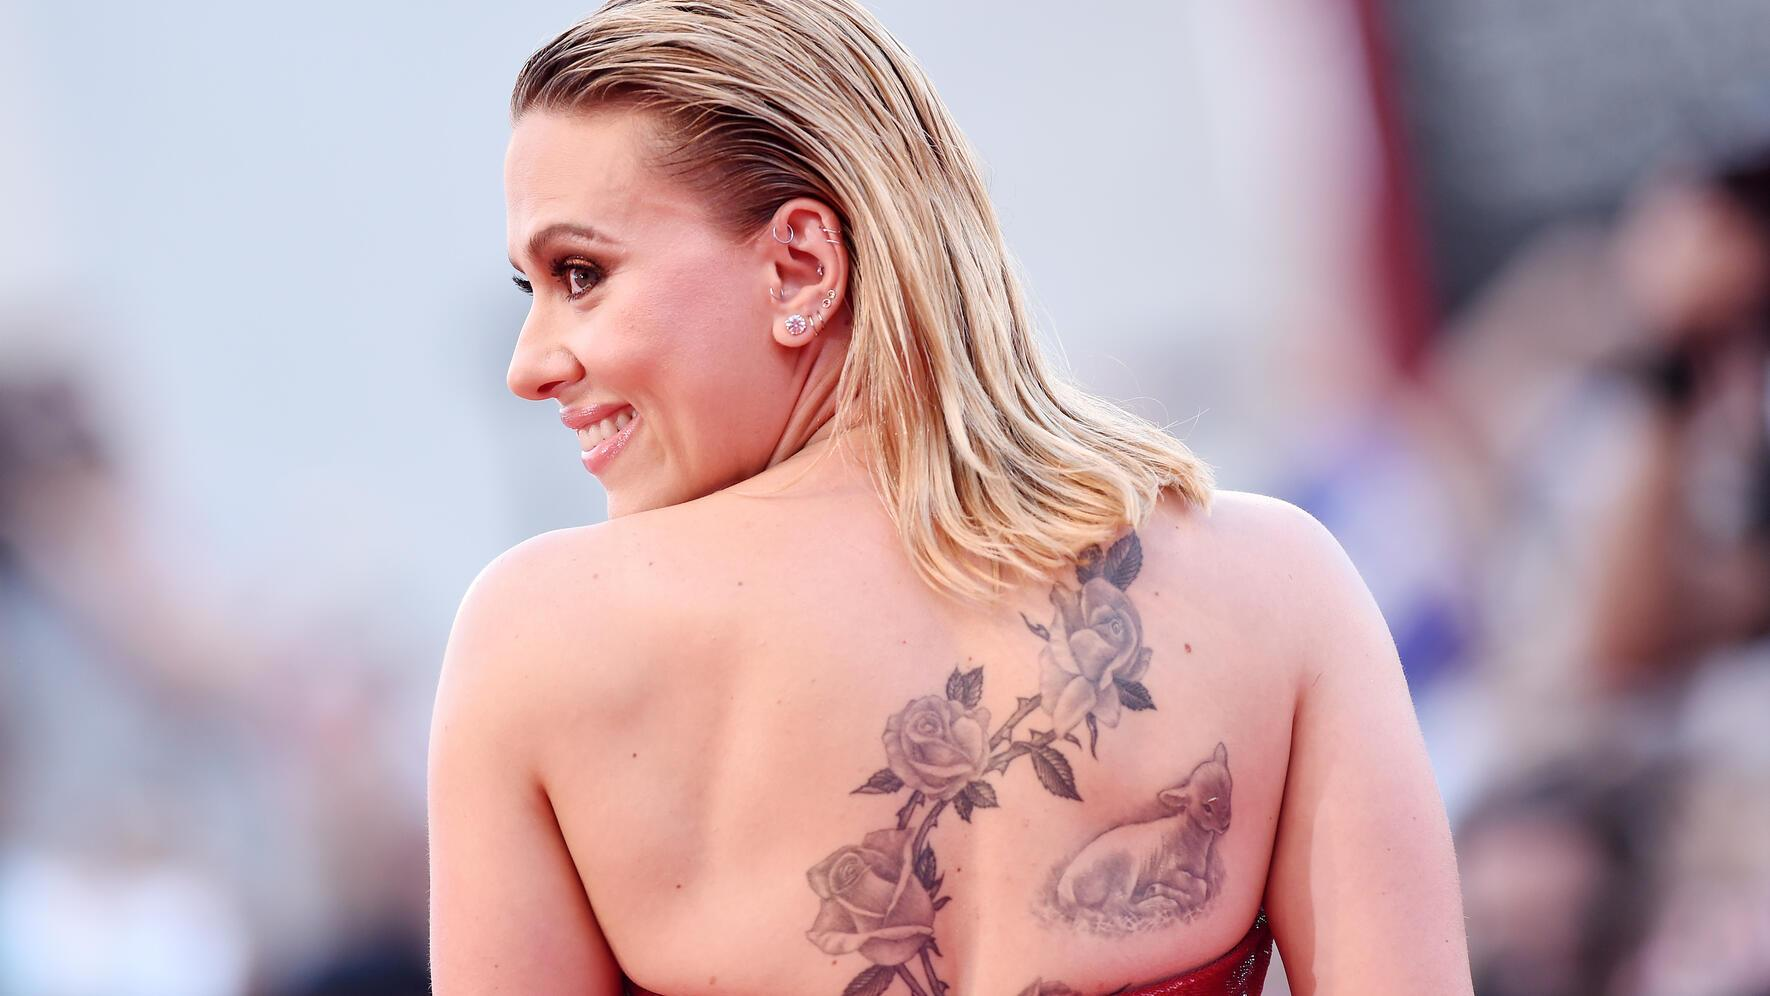 """VENICE, ITALY - AUGUST 29:  Actress Scarlett Johansson walks the red carpet ahead of the """"Marriage Story"""" screening during during the 76th Venice Film Festival at Sala Grande on August 29, 2019 in Venice, Italy. (Photo by Stefania D'Alessandro/WireImage,)"""